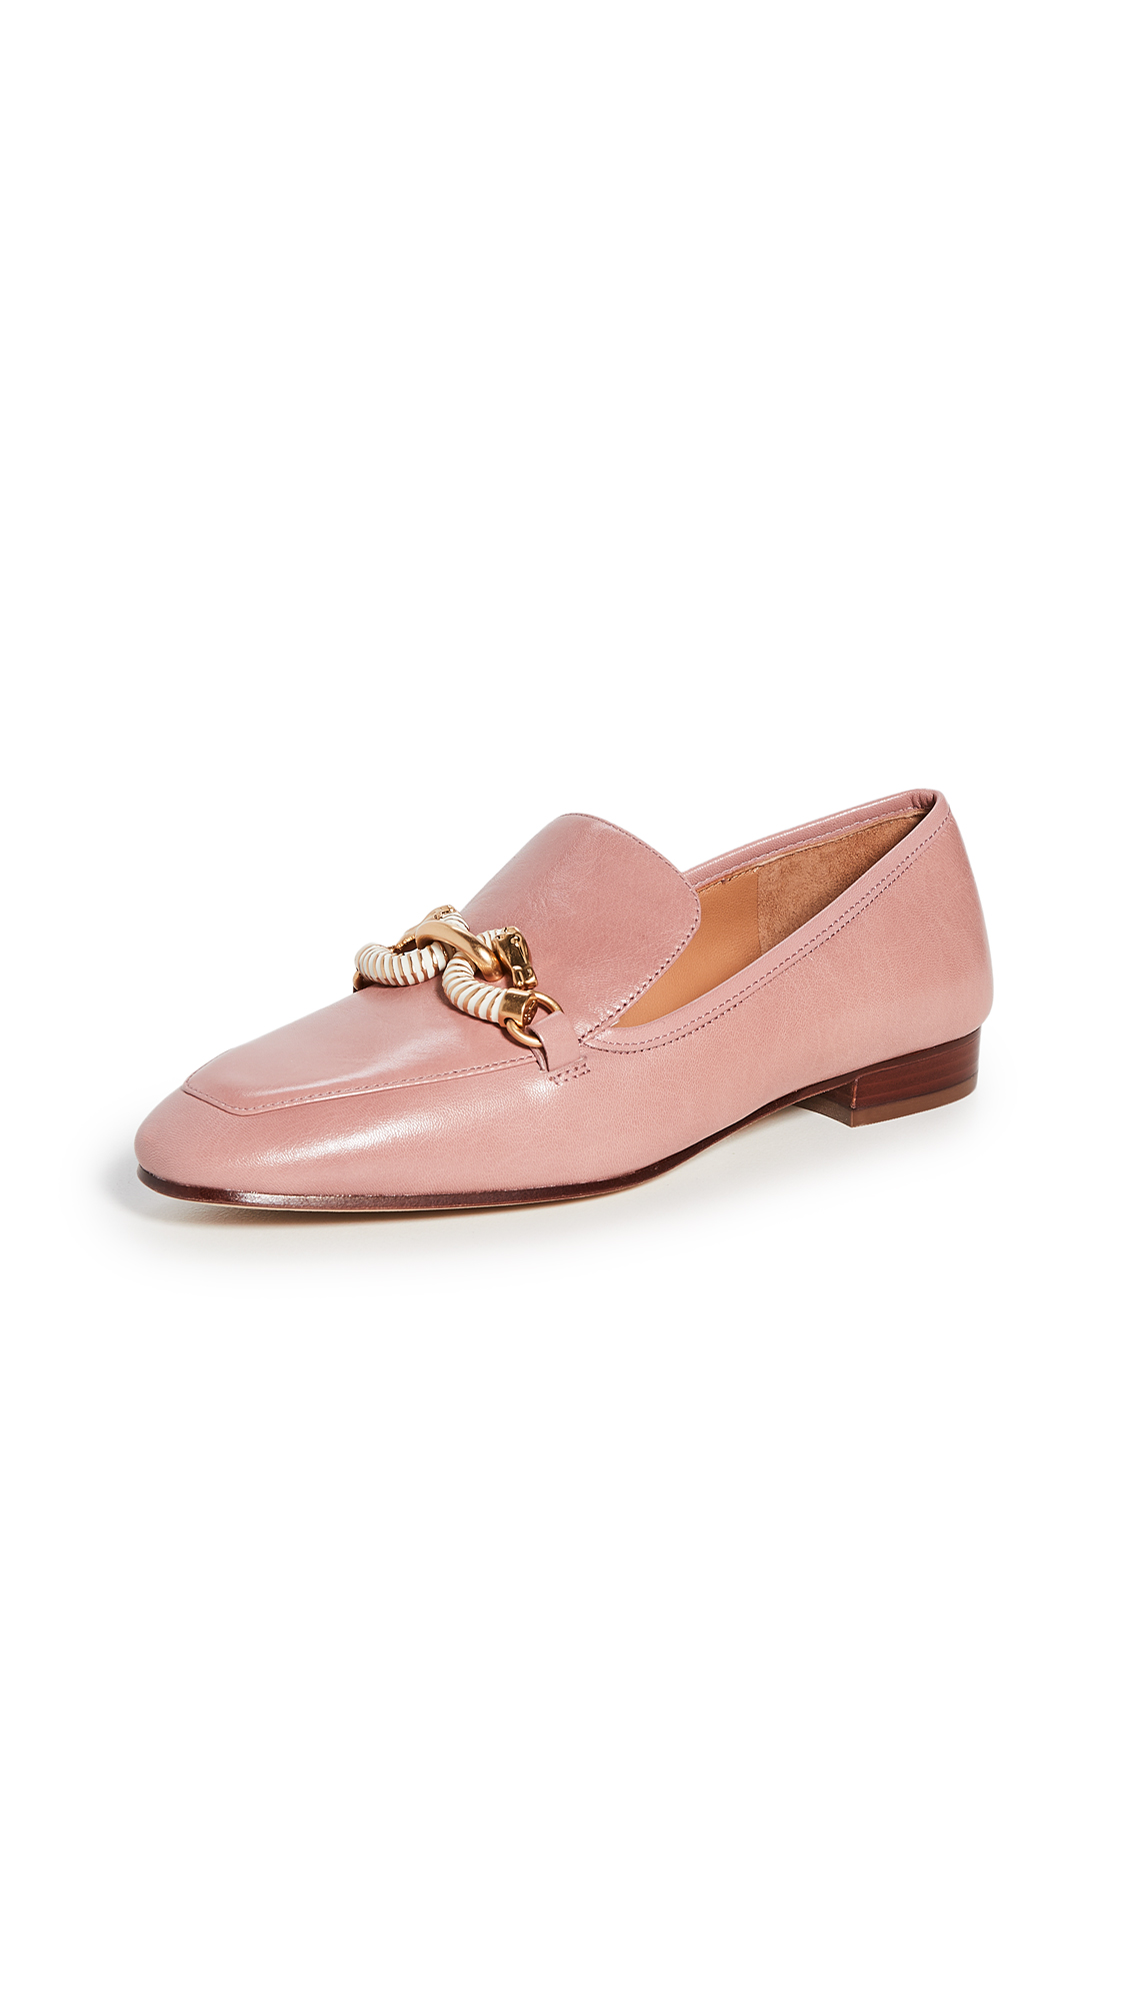 Tory Burch Leathers 20MM JESSA LOAFERS